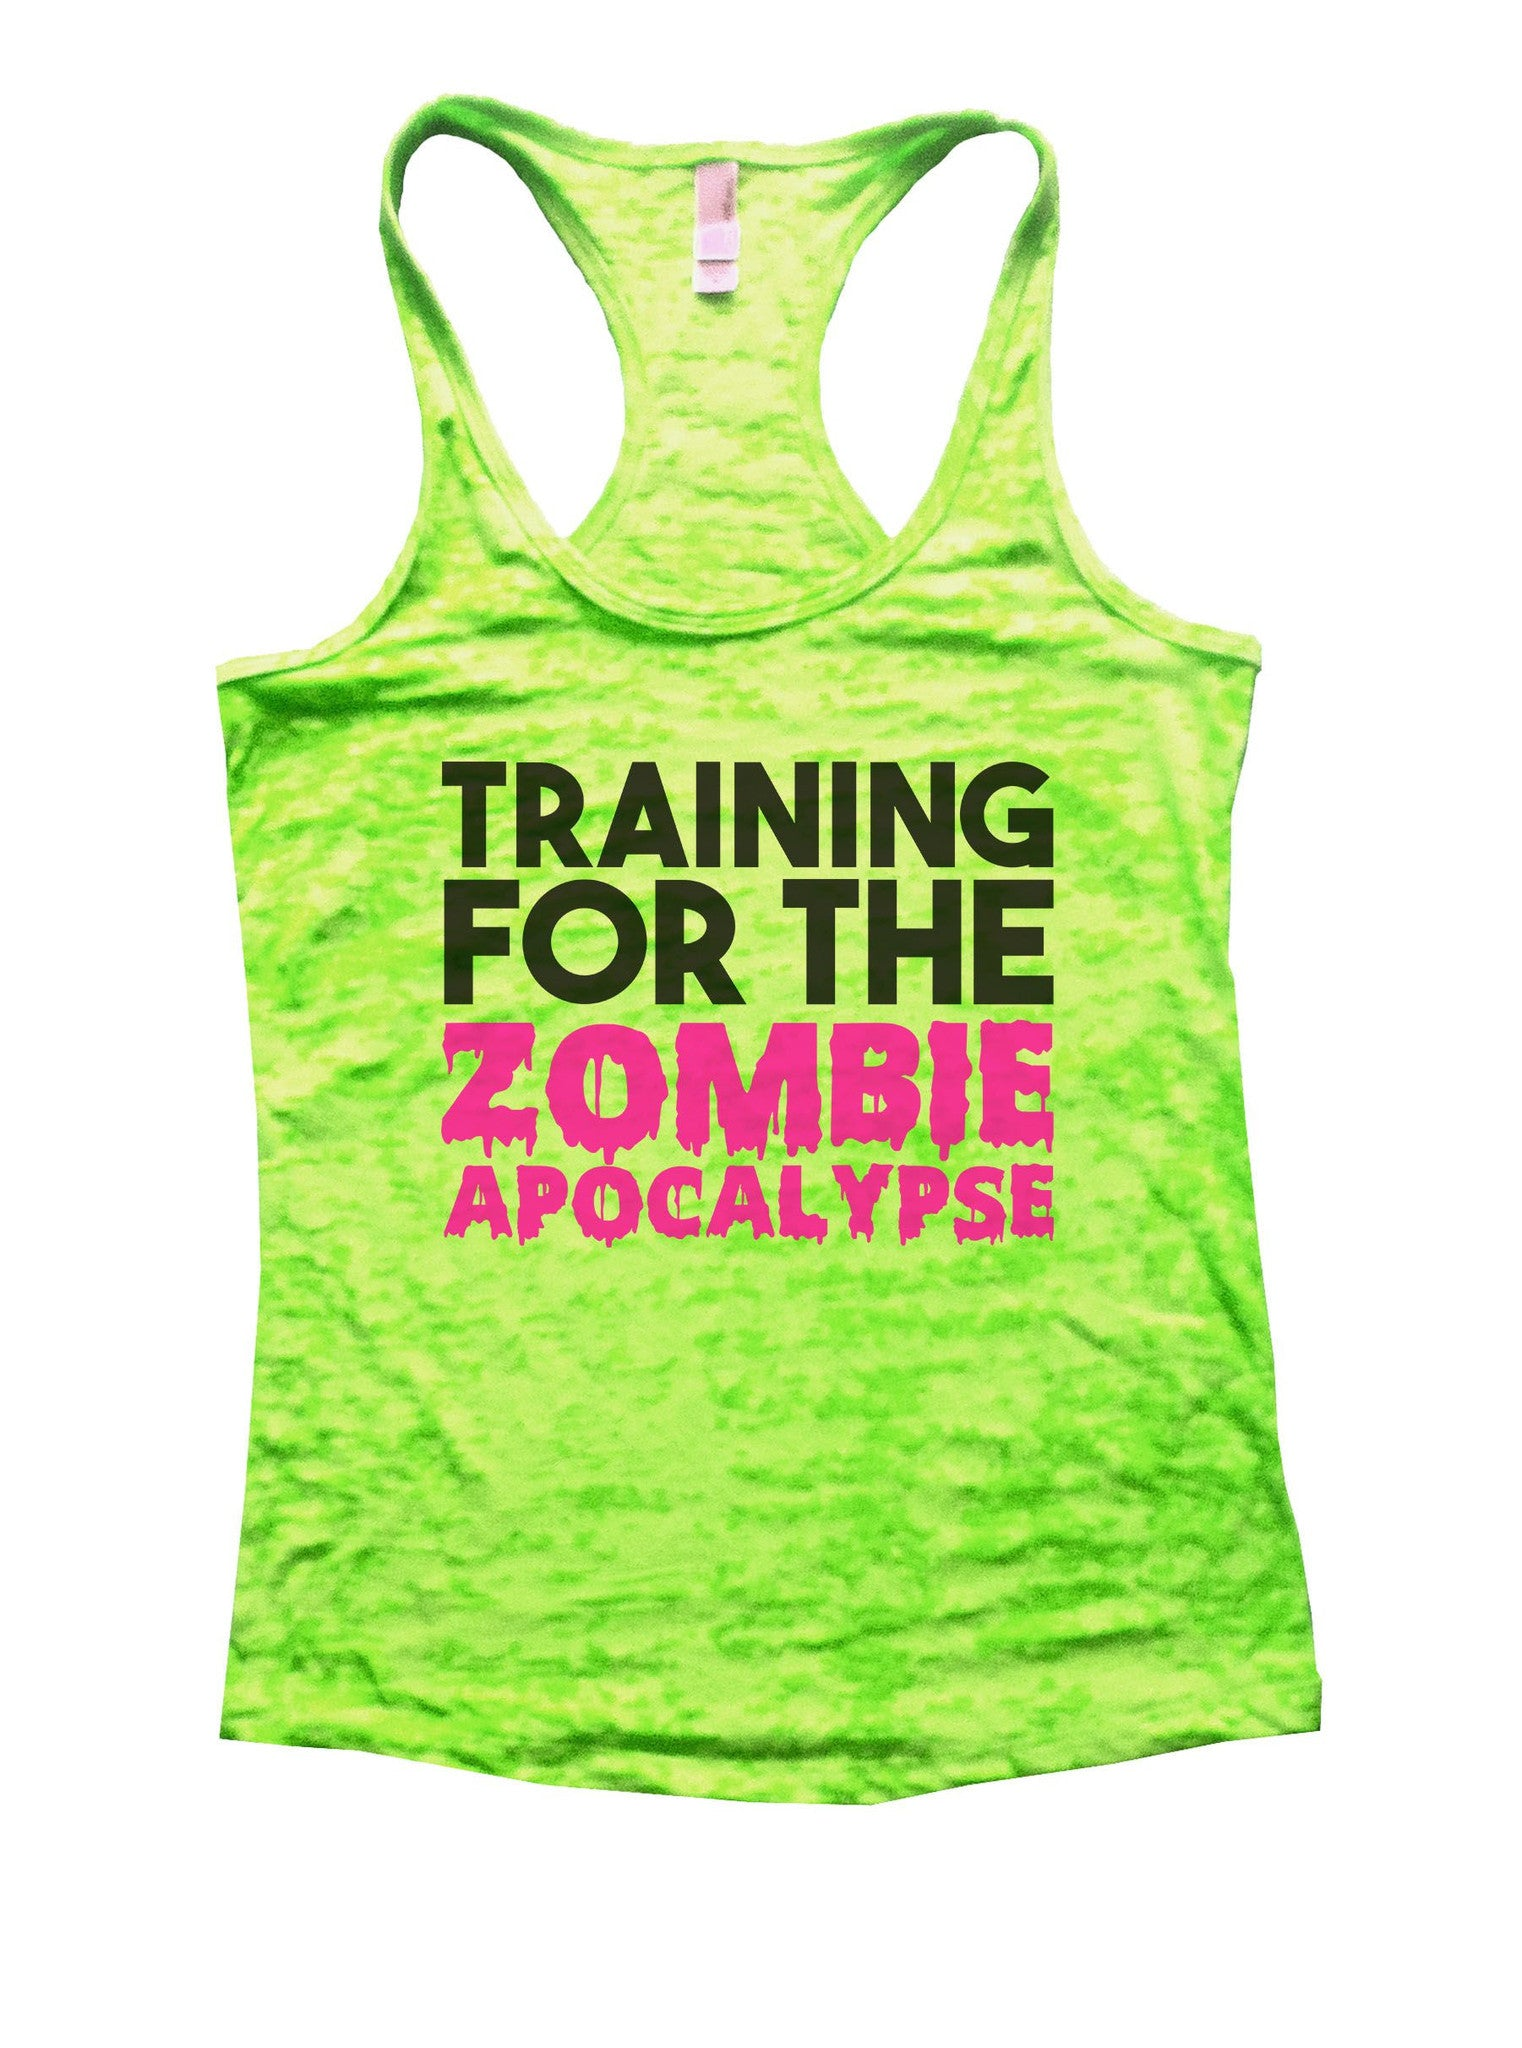 Training For The Zombie Apocalypse Burnout Tank Top By BurnoutTankTops.com - 873 - Funny Shirts Tank Tops Burnouts and Triblends  - 2